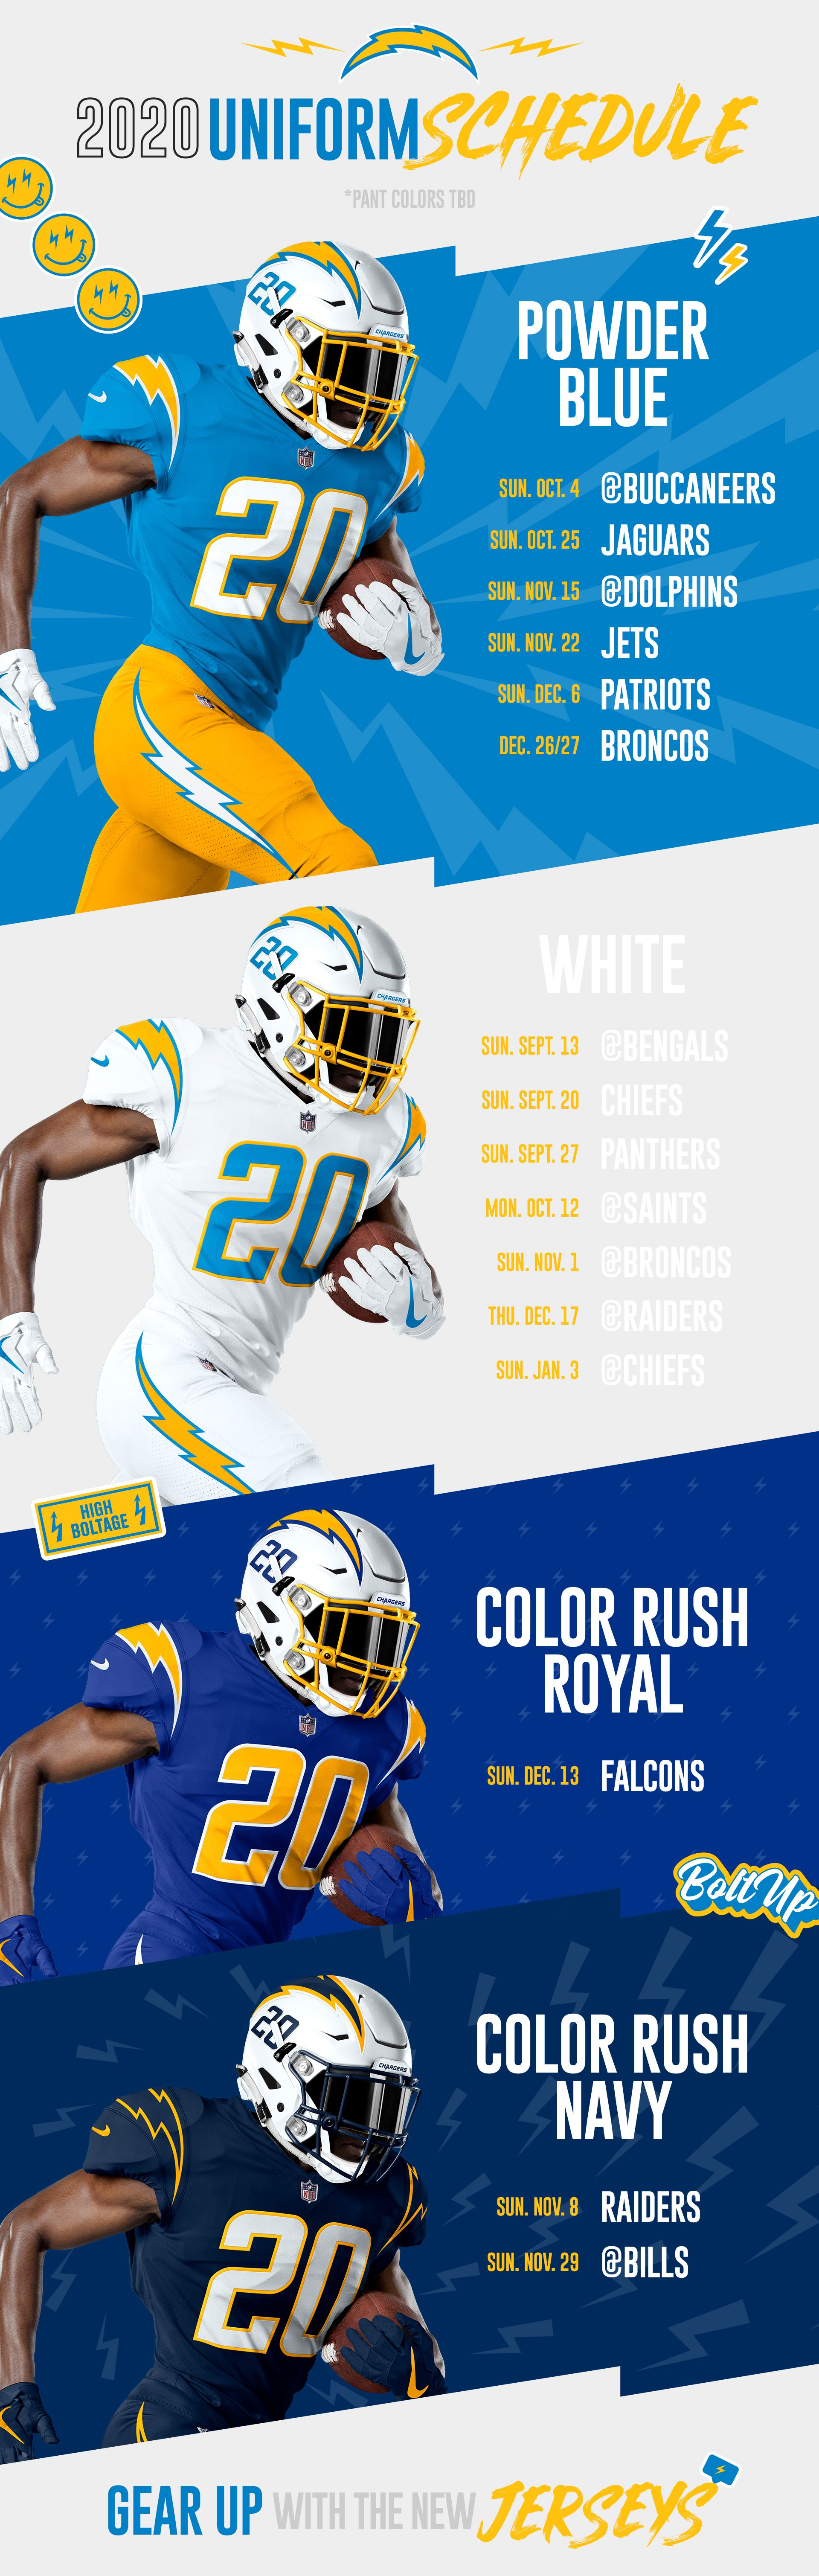 Chargers Official Site Los Angeles Chargers Chargers Com